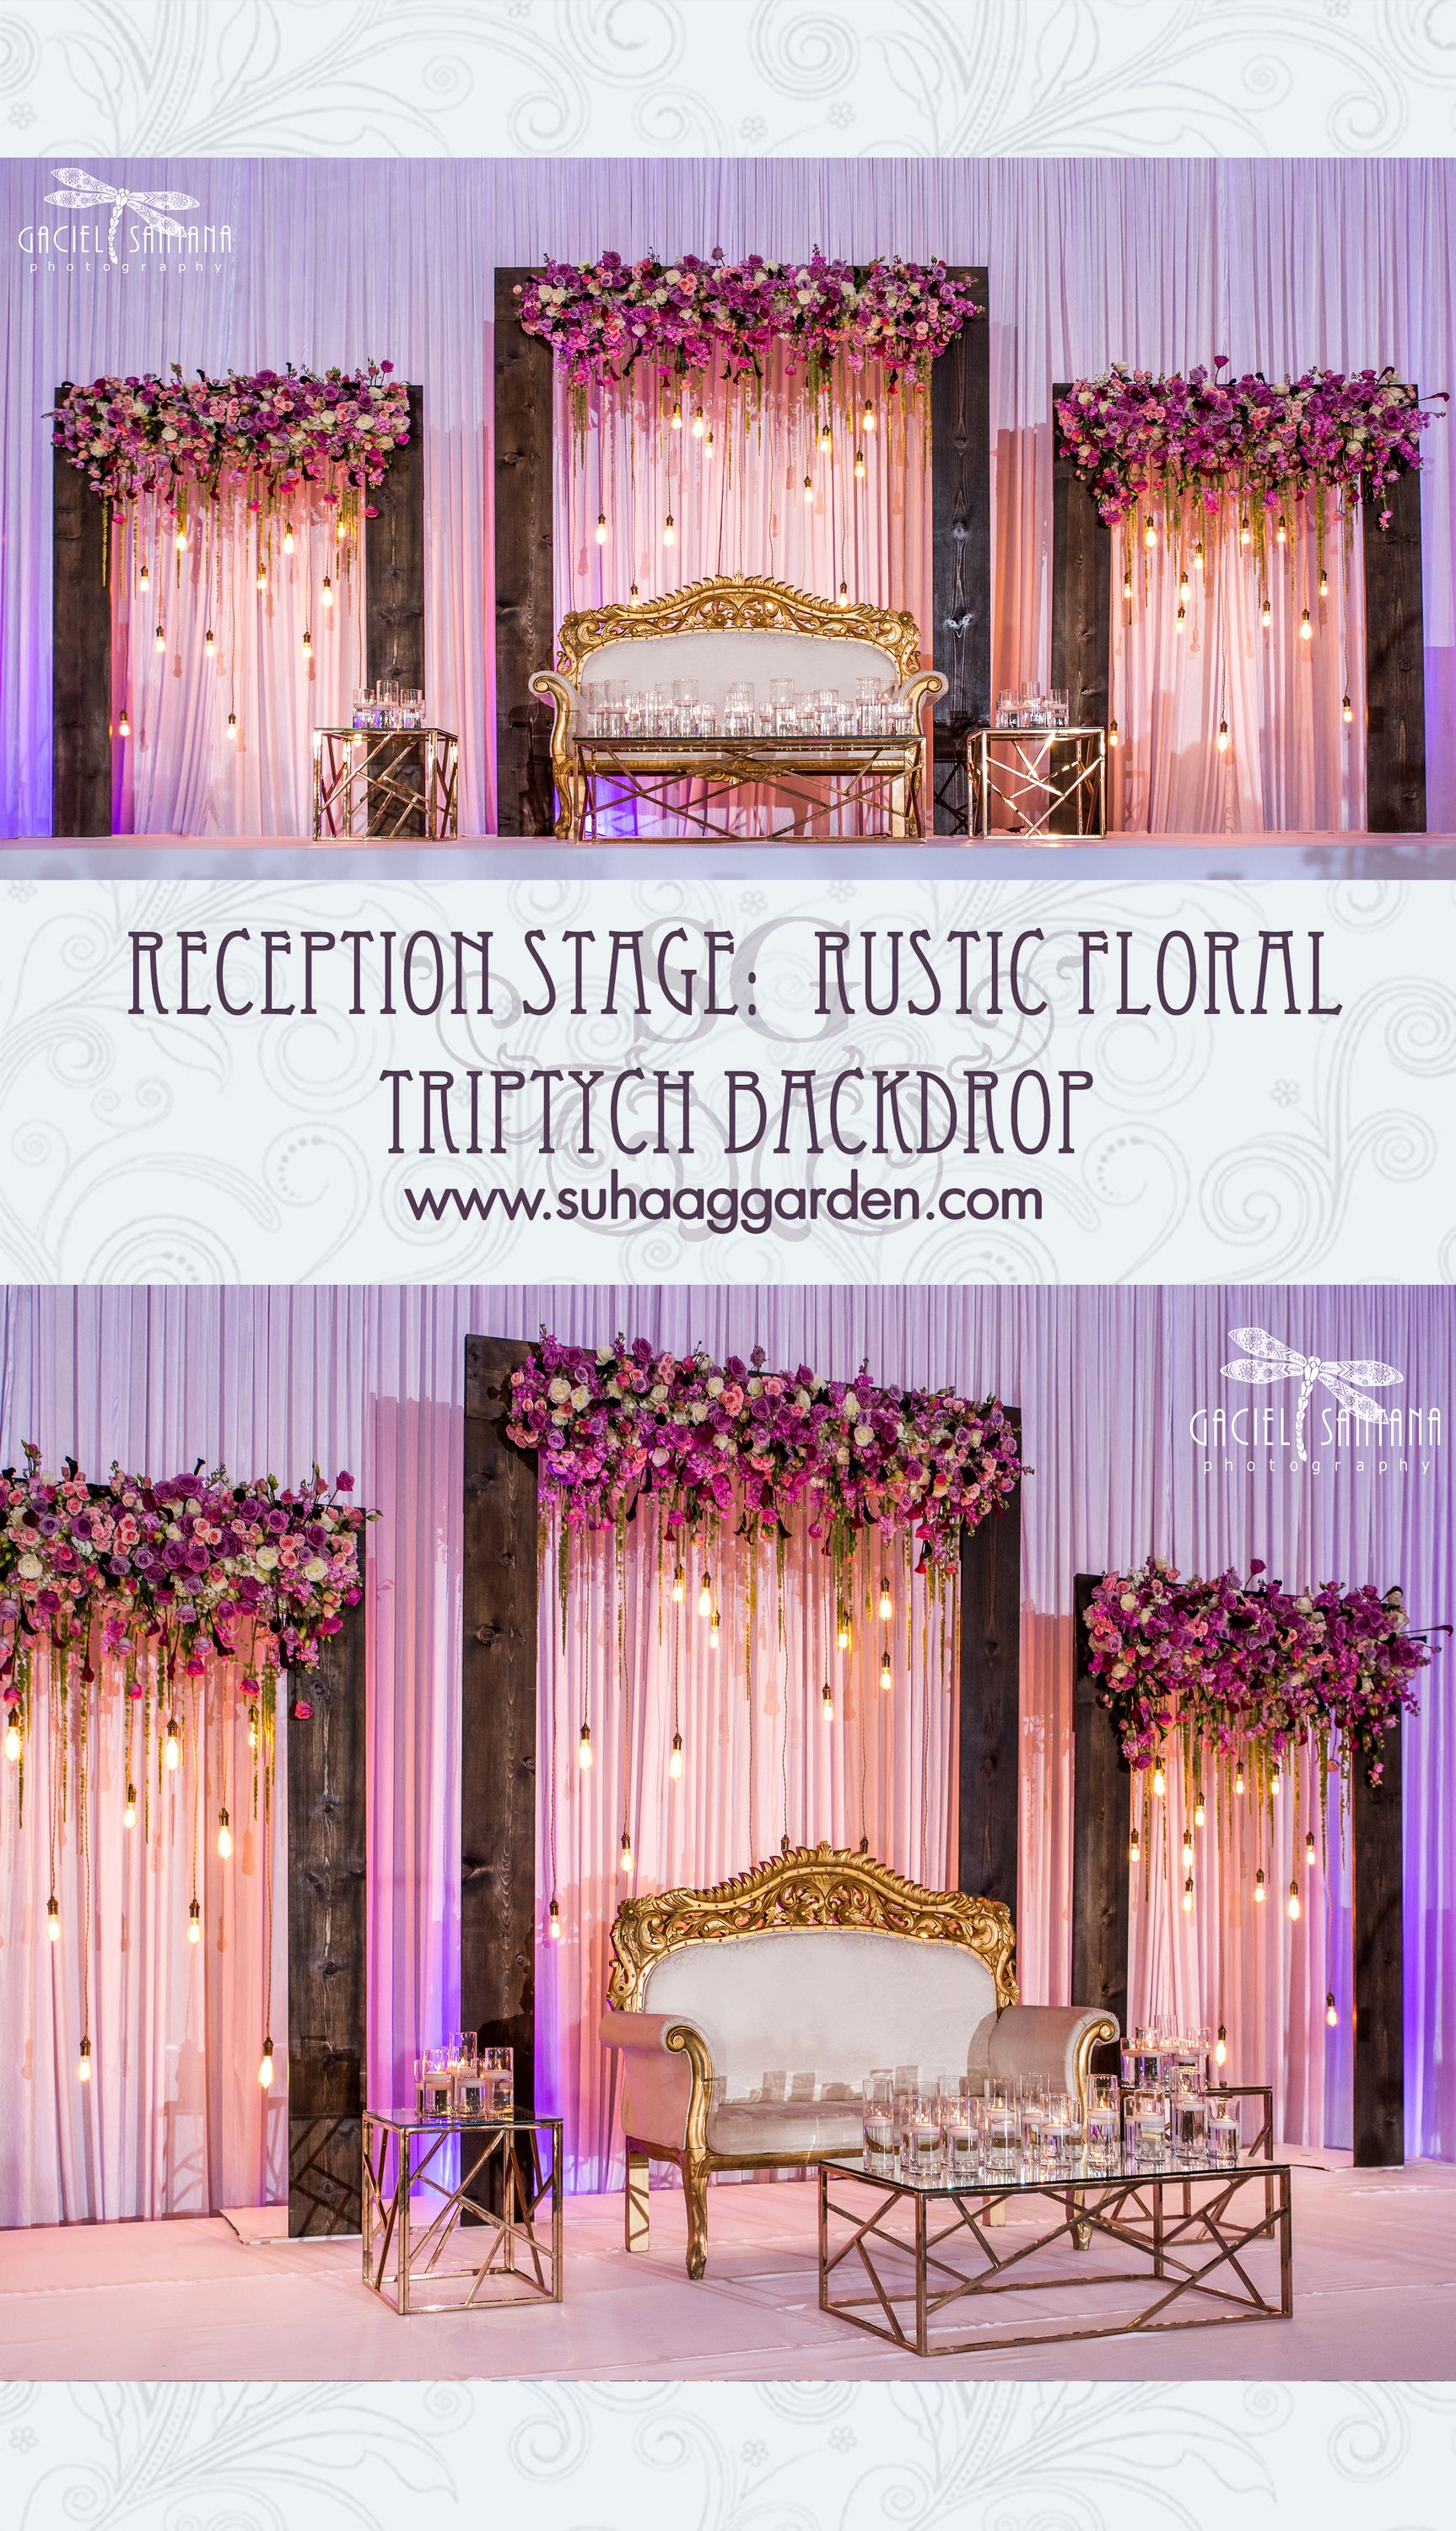 Reception Stage Rustic Floral Triptych Backdrop